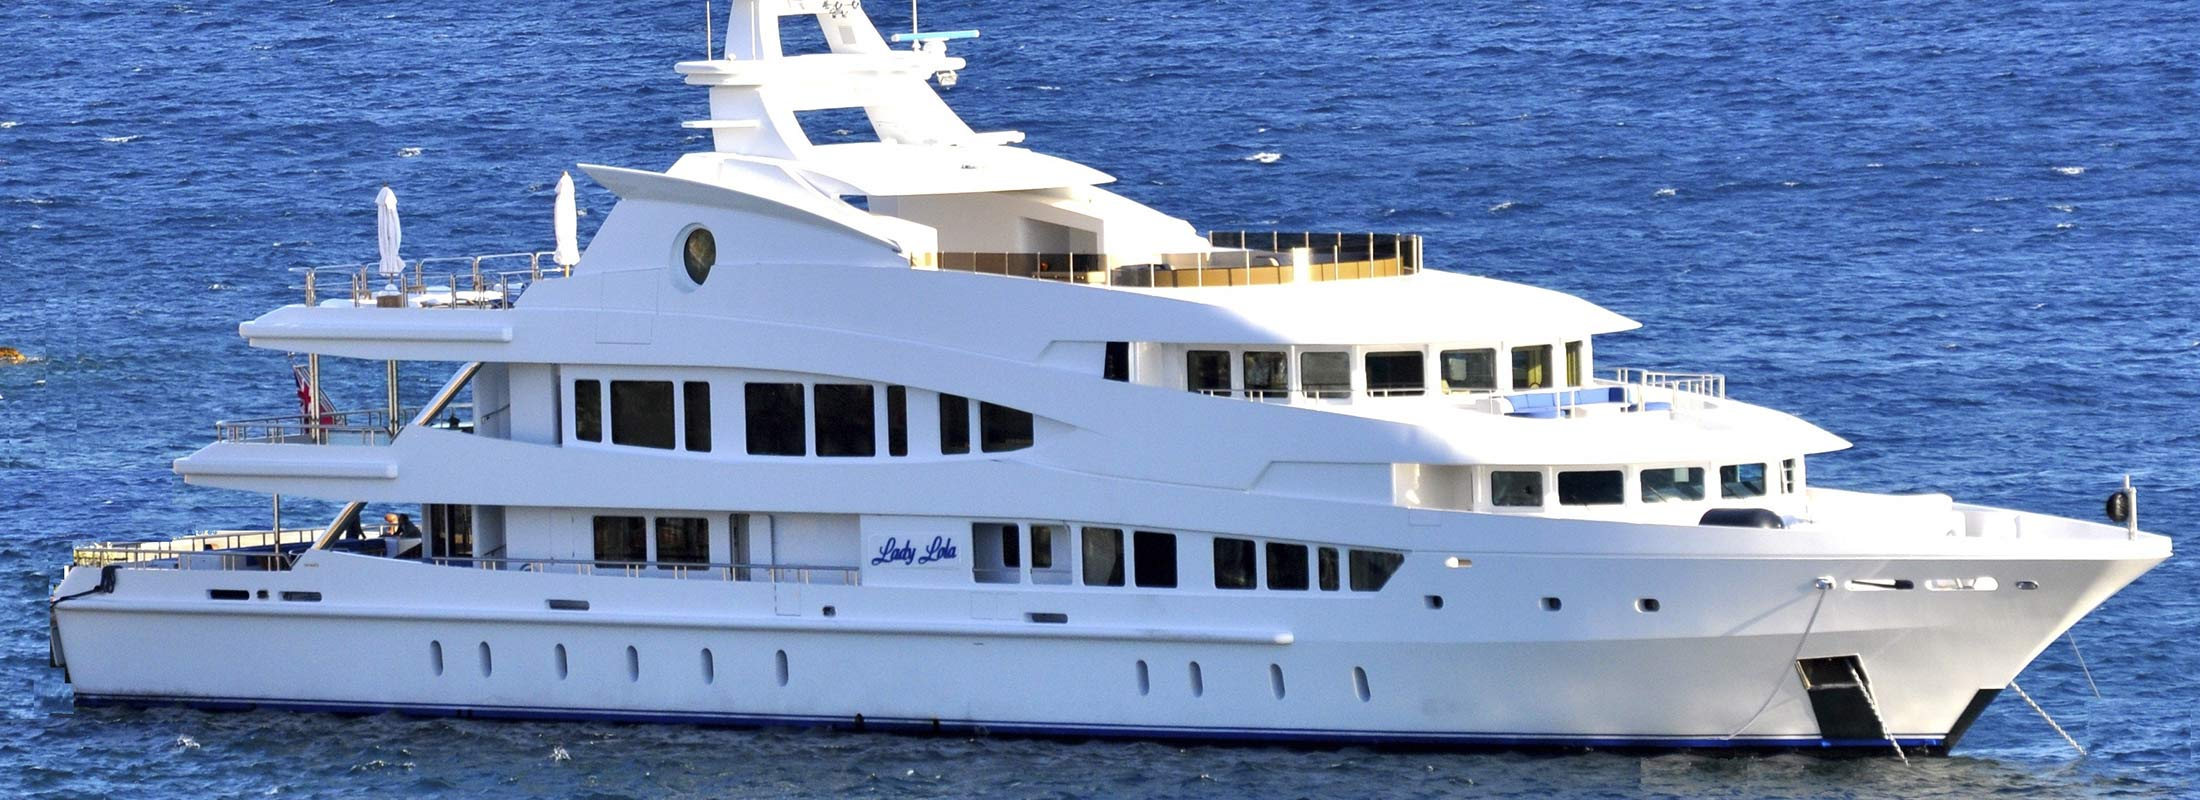 Lucky Lady luxury yacht charter Motor Yacht for Charter Caribbean Sea slider 1